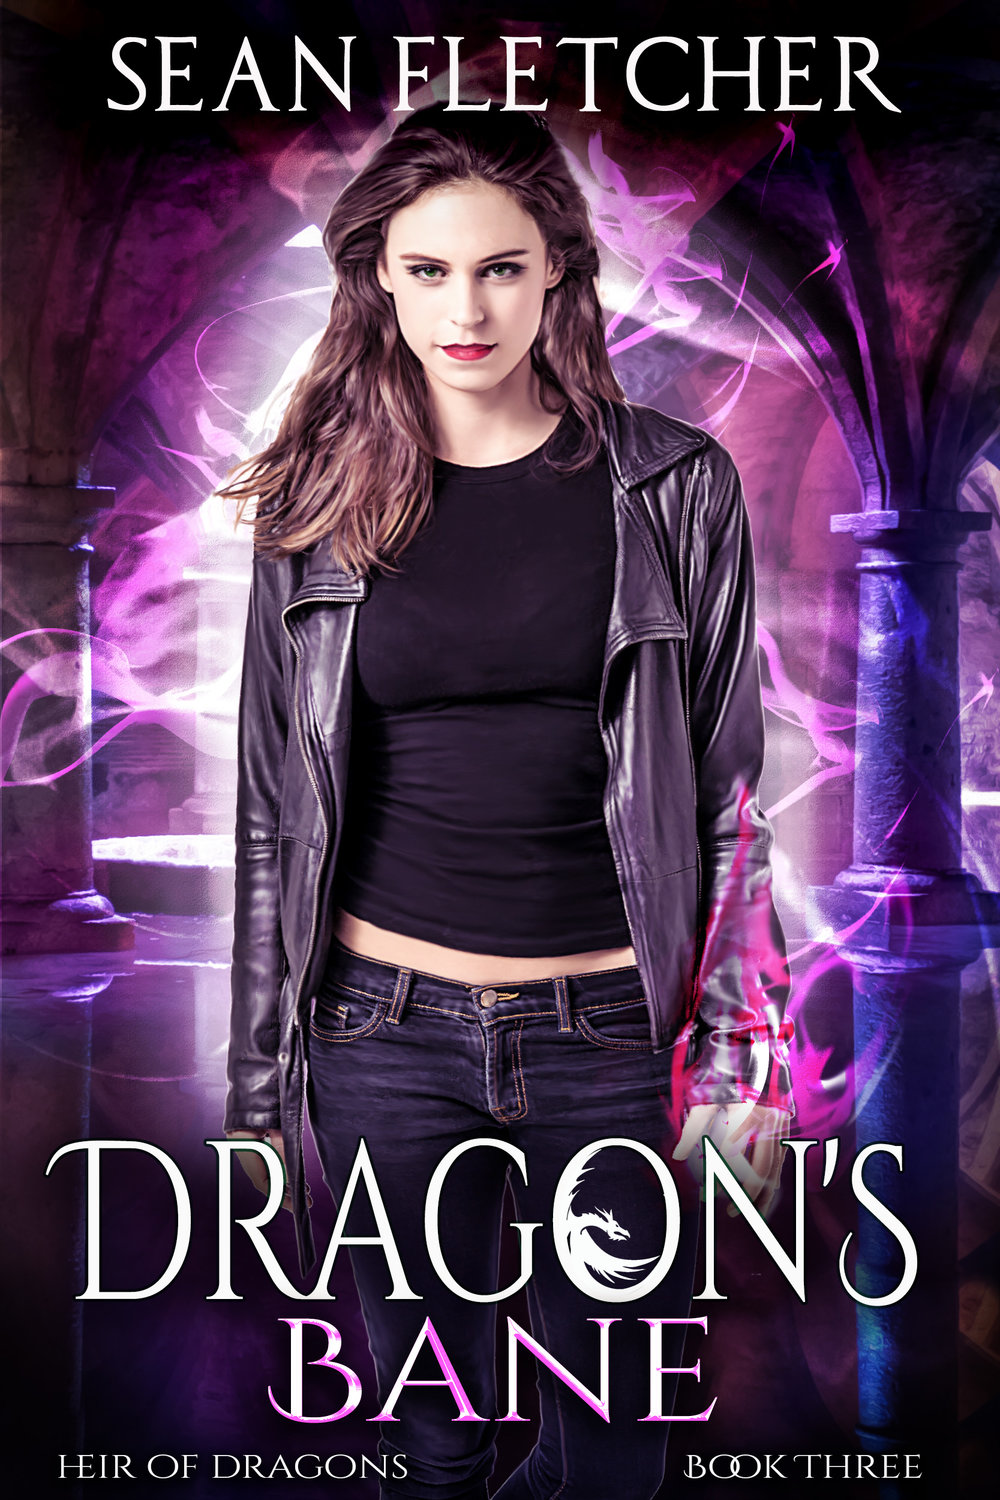 Dragon's Bane - In the caverns beneath New York City, an ancient evil is about to rise...The Herald has returned, and with him the Slayers are one step closer to summoning the Hunt and destroying Kaylee and the rest of the dragon-kin. Worse, Kaylee is attacked by a dragon. An actual dragon. The kind that definitely shouldn't exist. It seems something is forcing innocent dragon-kins to permanently shift against their will. With the arrival of a powerful creep interested in romancing her, and Jade's Tamer test taking place in the caverns of New York City, a mystery is one more thing Kaylee doesn't need to deal with right now.But when Jade's test goes disturbingly wrong, Kaylee enters the underground, determined to find her. When she discovers instead is a Slayers' plot more dangerous than she could have imagined. One that promises to end her and her friends for good.Some secrets, it seems, are better left forgotten.But now they're coming back to life.